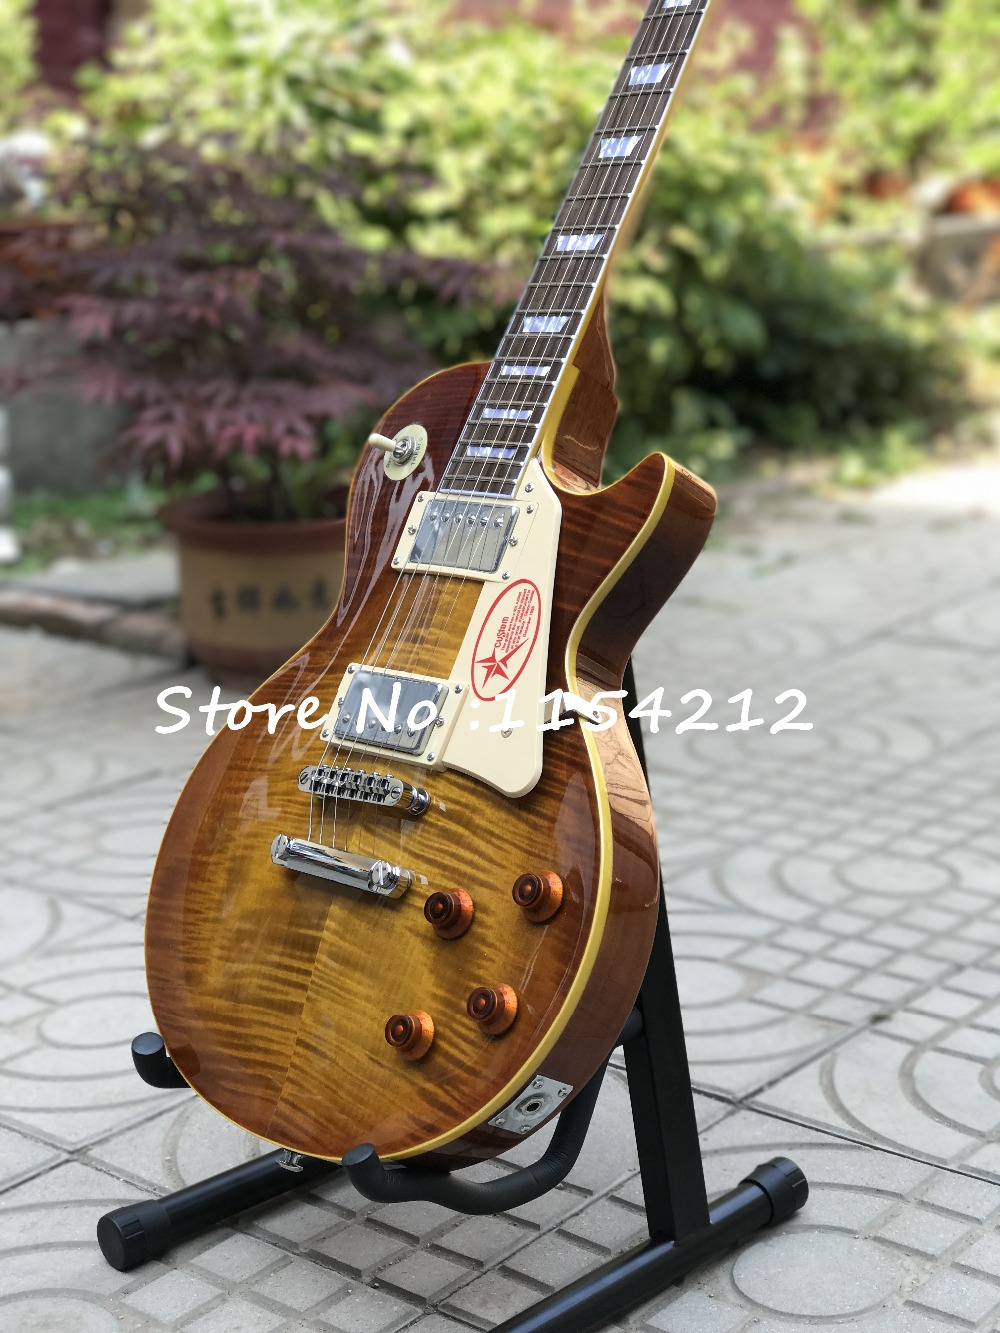 Hot lp guitar Custom shop 1959 R9 les Tiger striped maple cover LP Standard electric guitar Free shipping in stock new 1959 r9 les tiger flame paul electric guitar standard lp 59 standard in stock ems fast shipping vintage sunburst terry burst